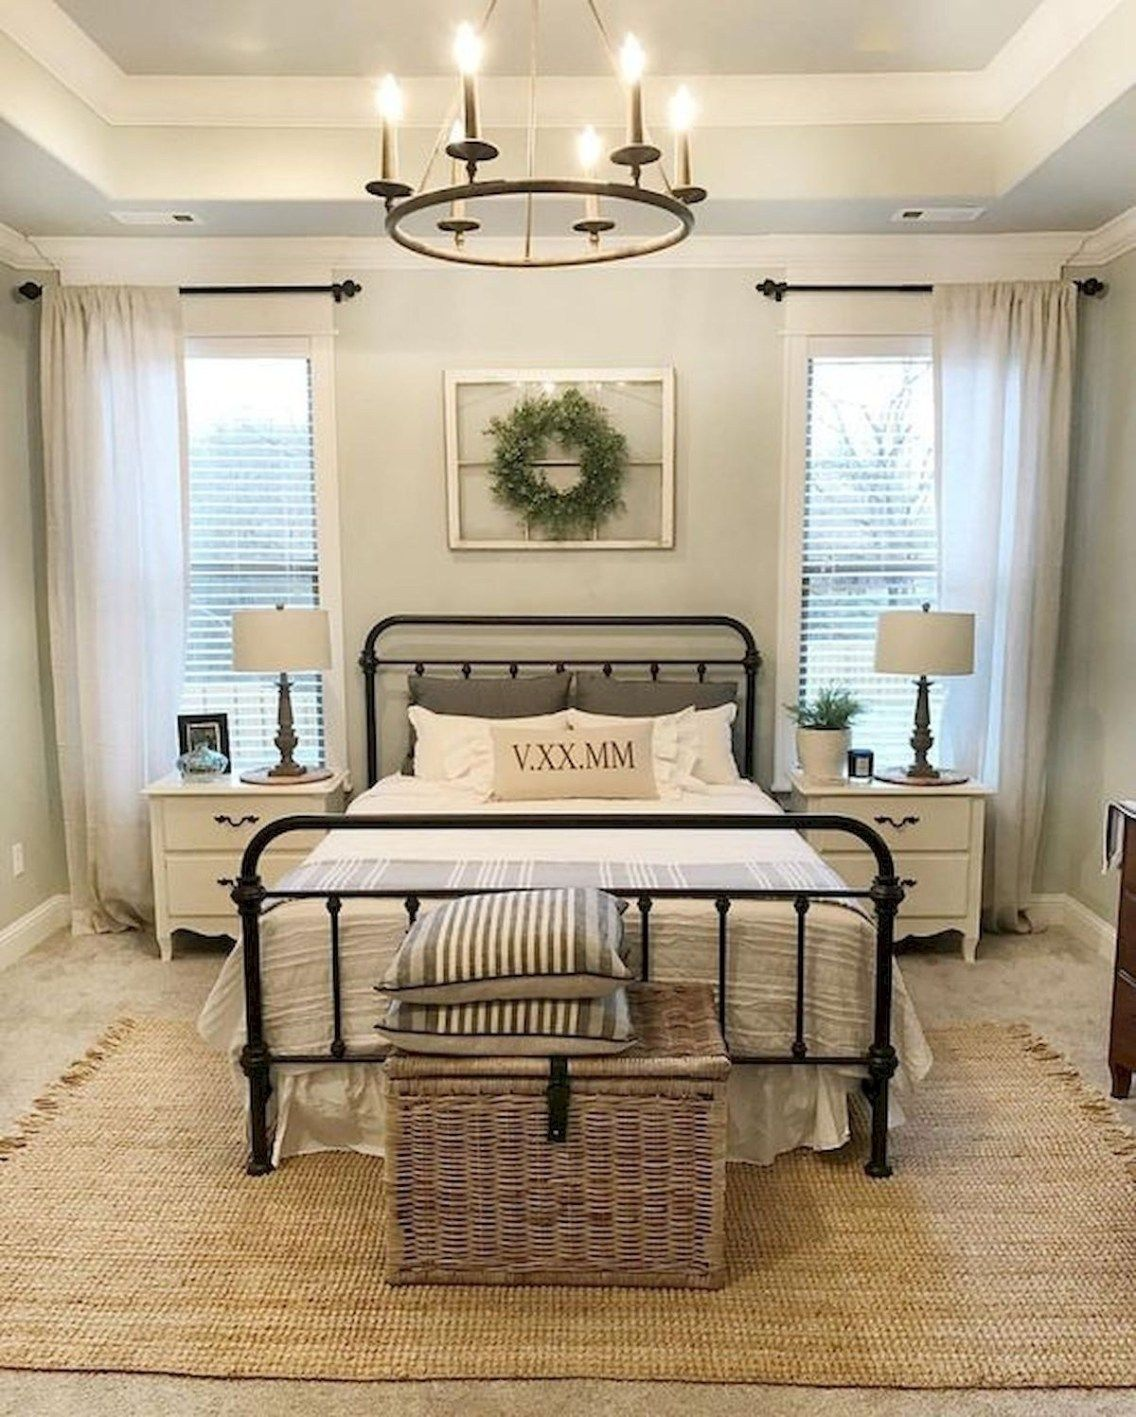 50 Awesome Farmhouse Bedroom Decor Ideas And Remodel With Images Farm House Living Room Farmhouse Bedroom Decor Apartment Bedroom Decor